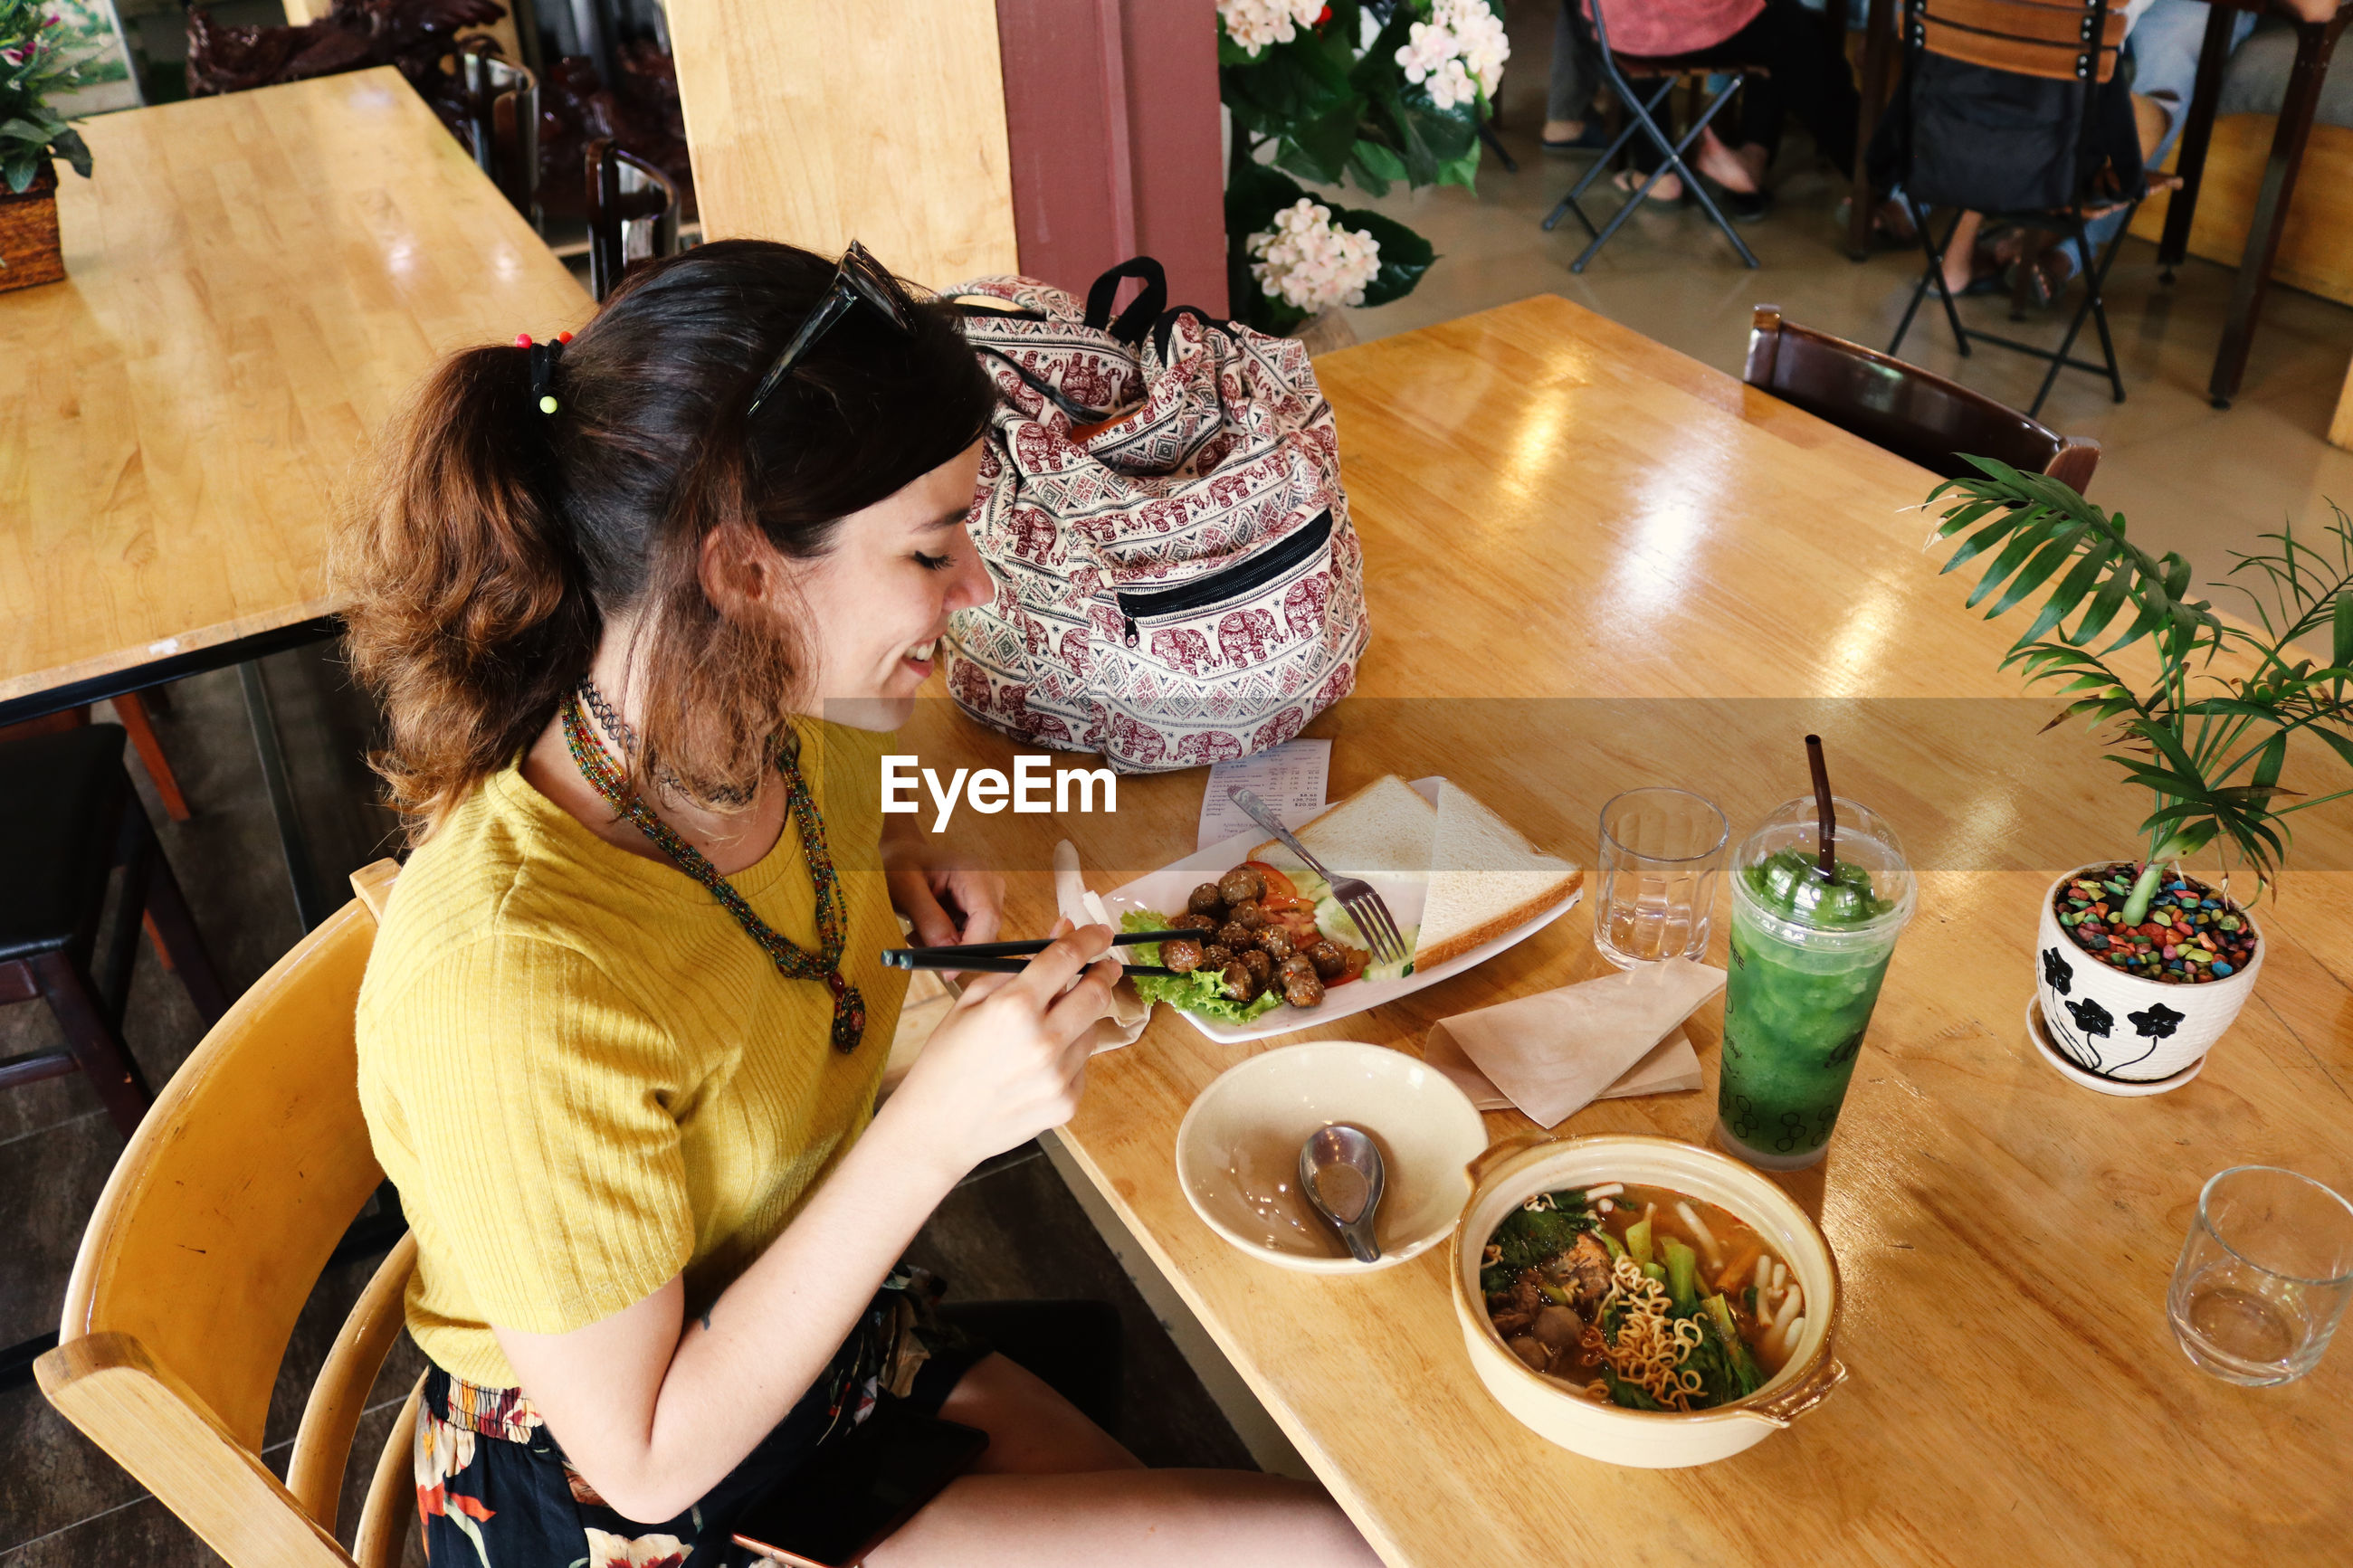 High angle view of woman sitting in restaurant